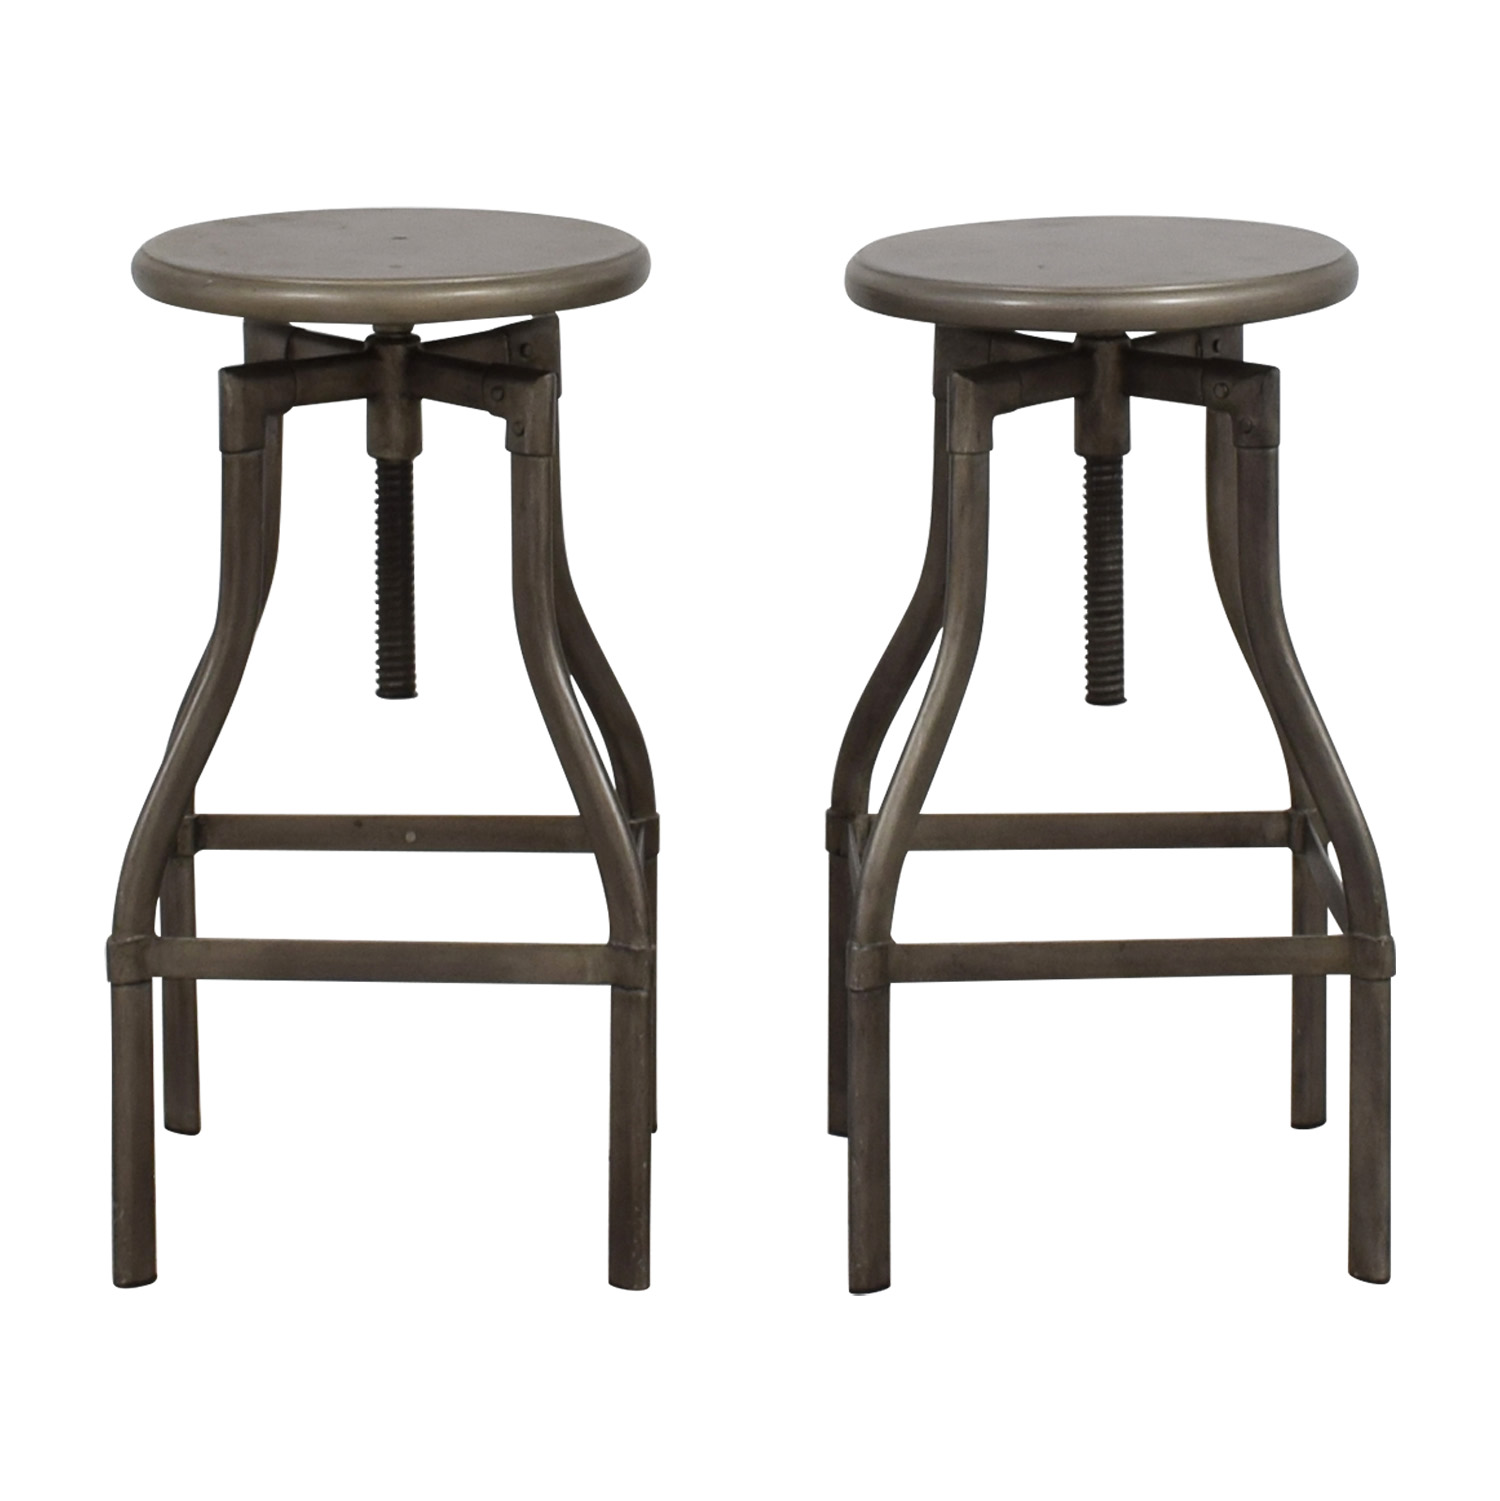 buy Crate & Barrel Turner Bar Stools Crate & Barrel Stools